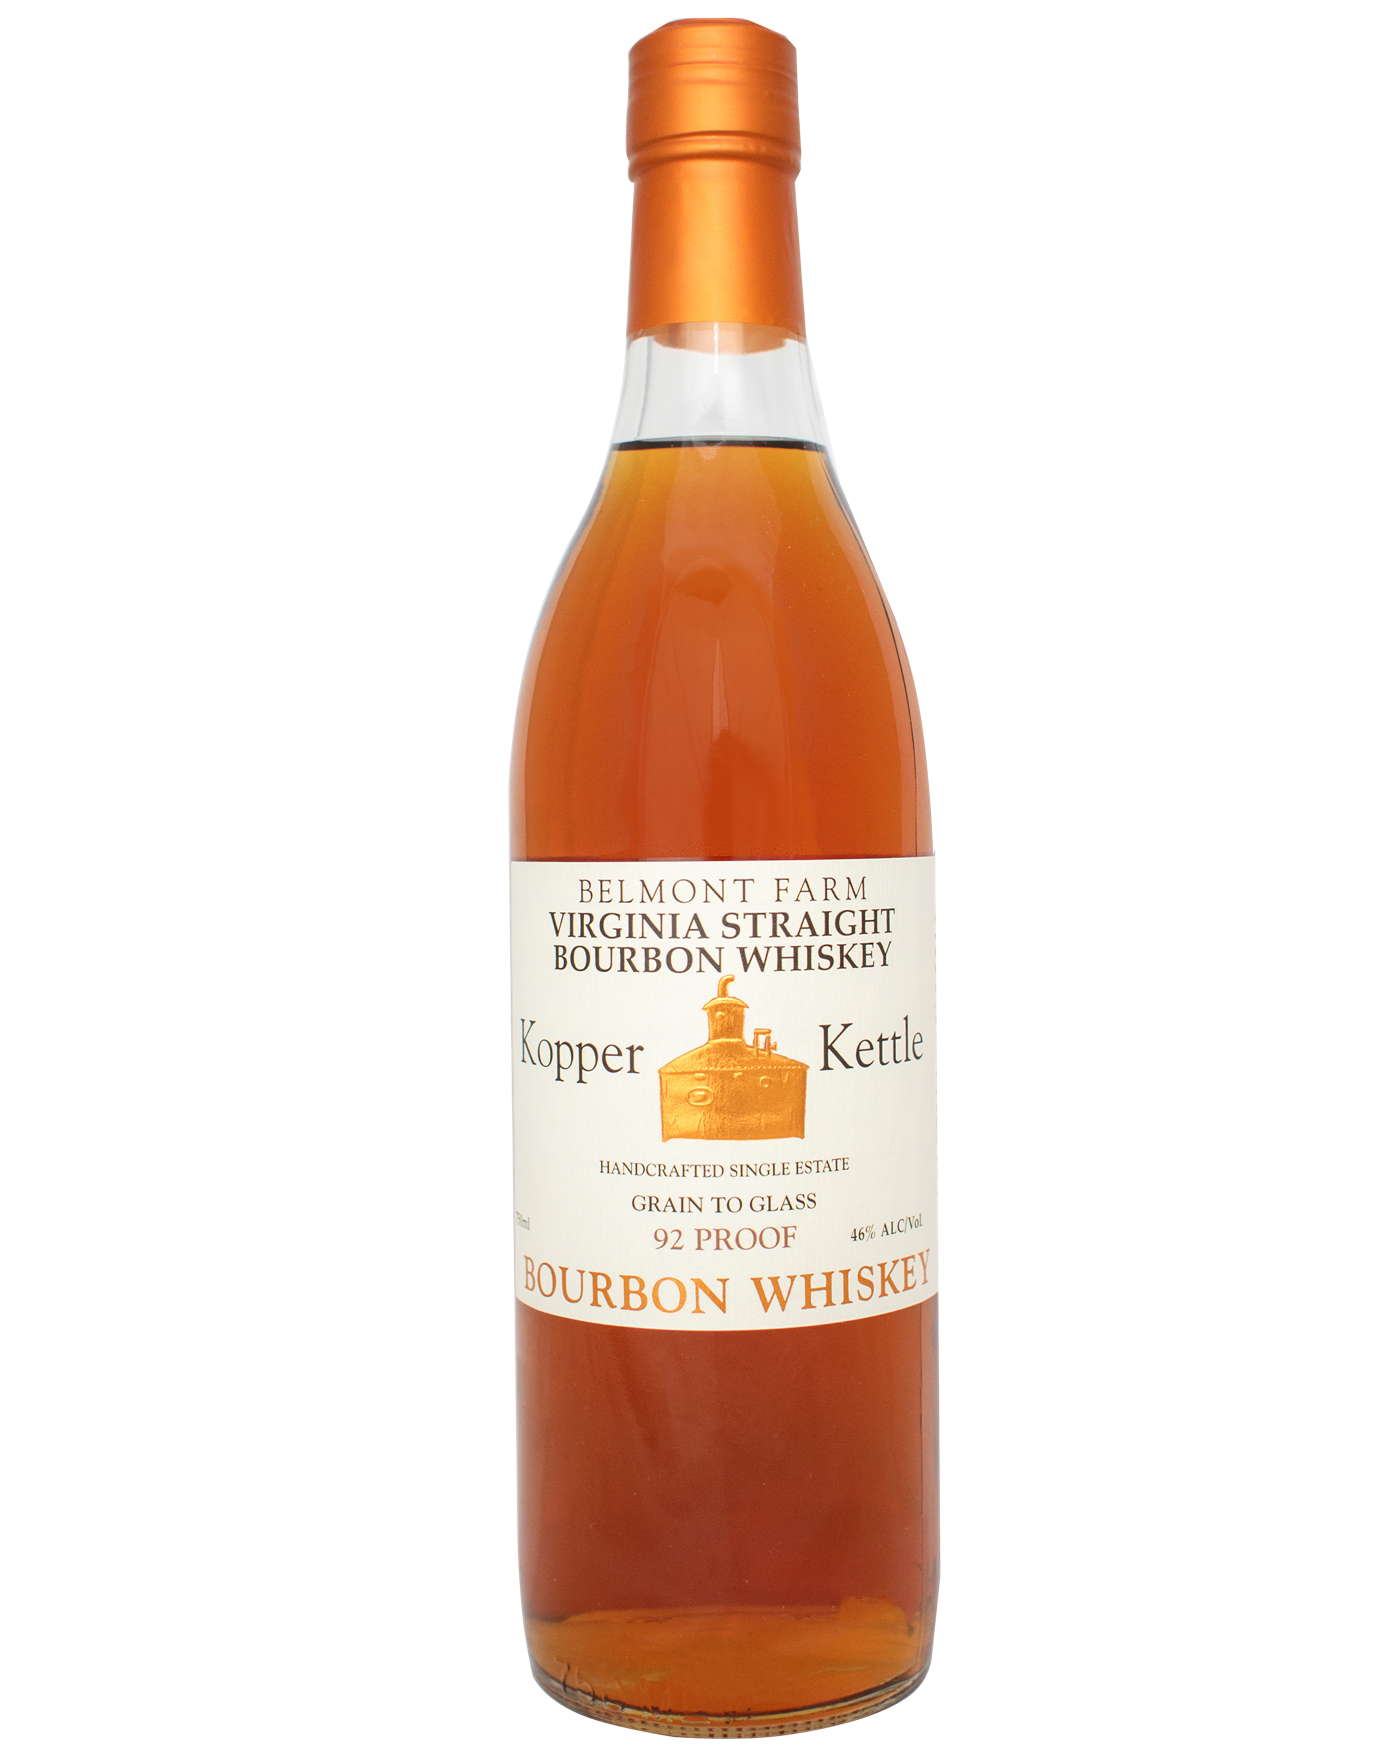 Virginia Straight Bourbon Whiskey